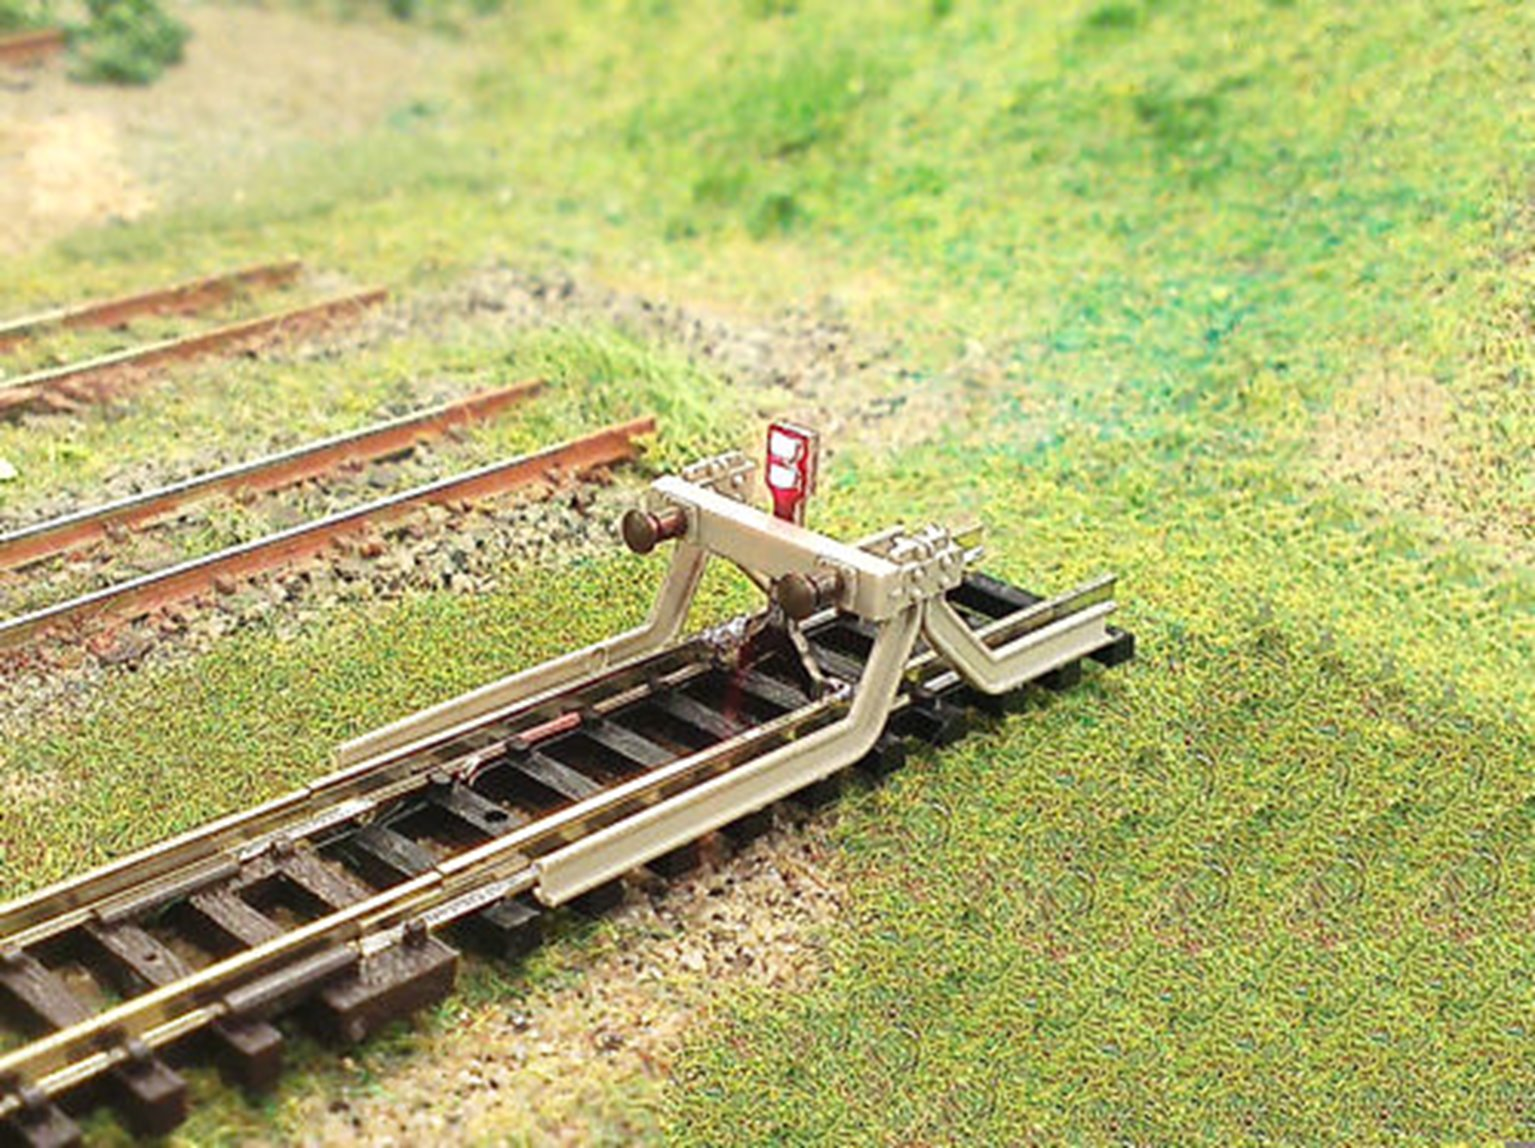 Buffer stop with light